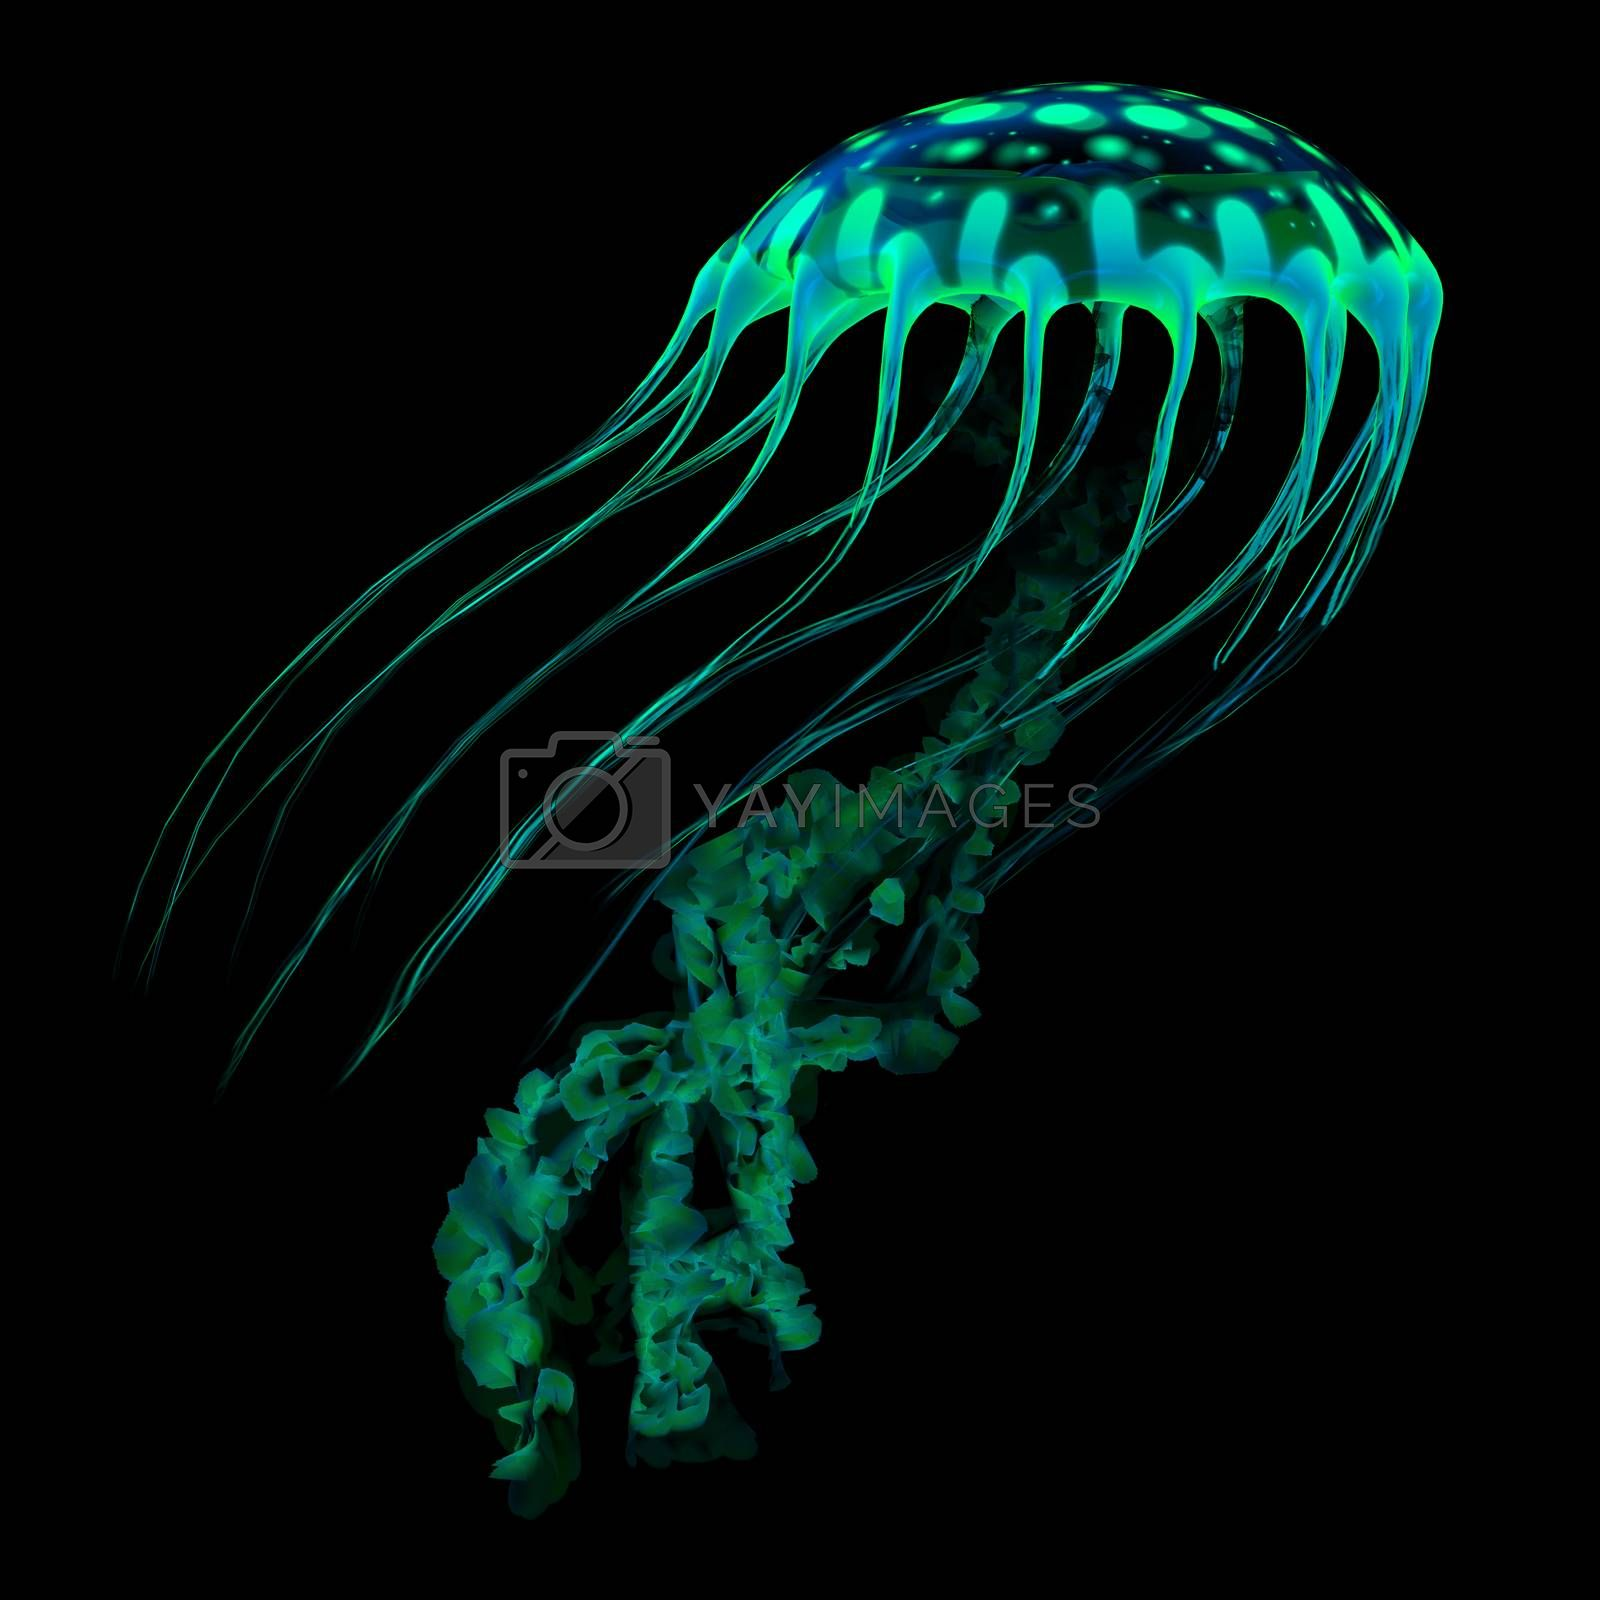 A glowing spotted jellyfish flows through the dark ocean with bioluminescent colors searching for prey.